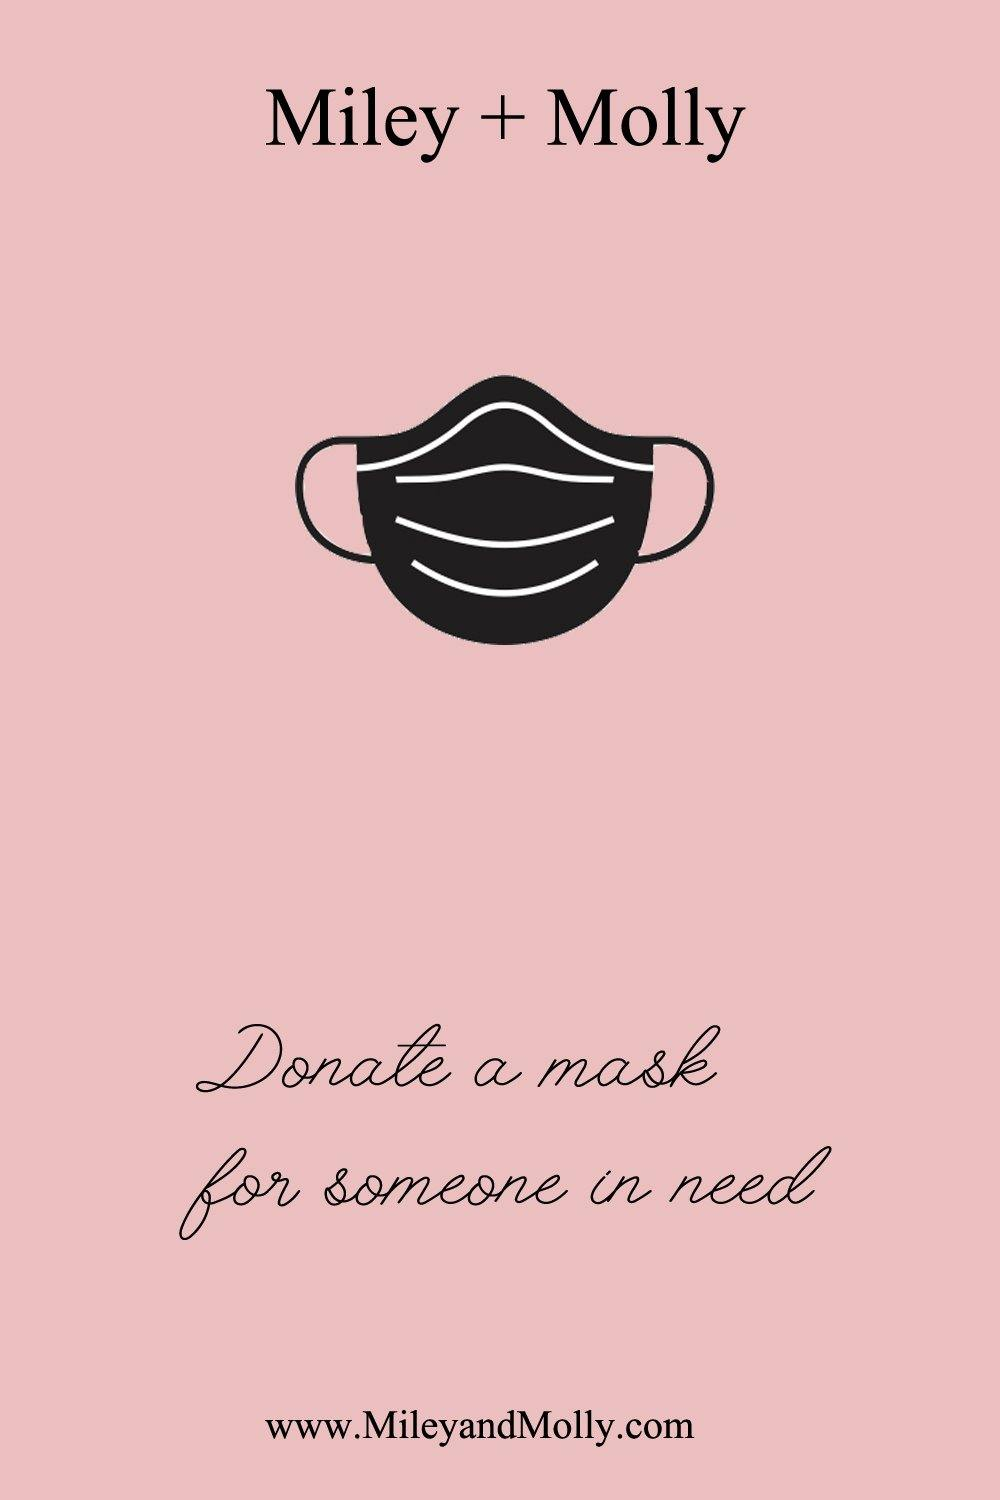 Donate a mask for someone in need